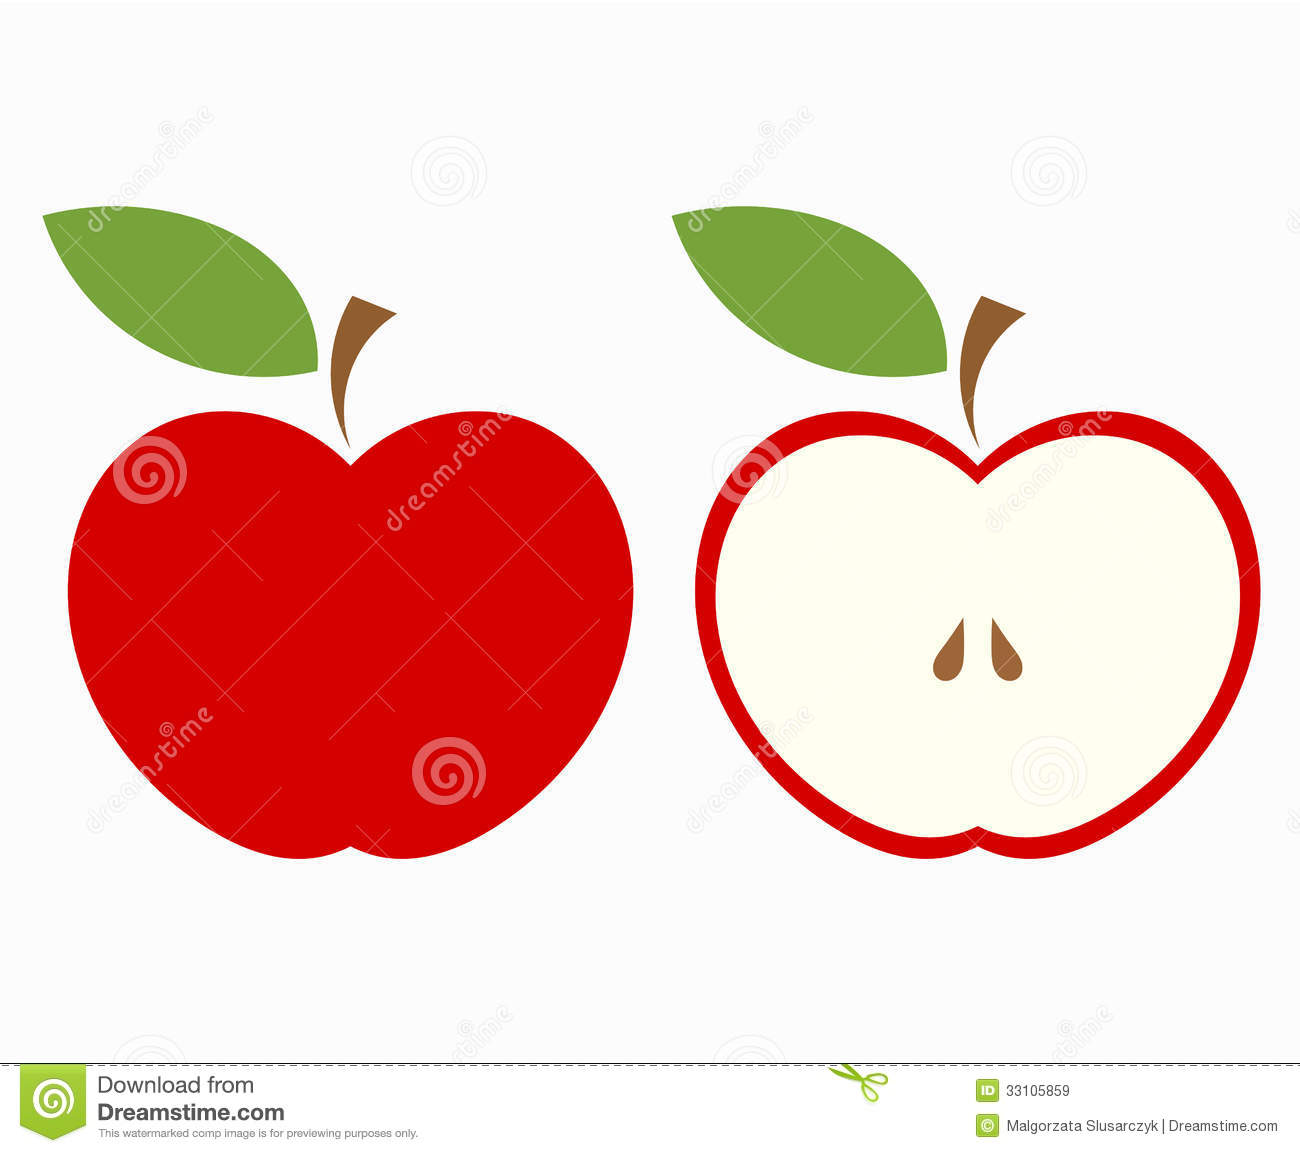 Half Apple Clipart.